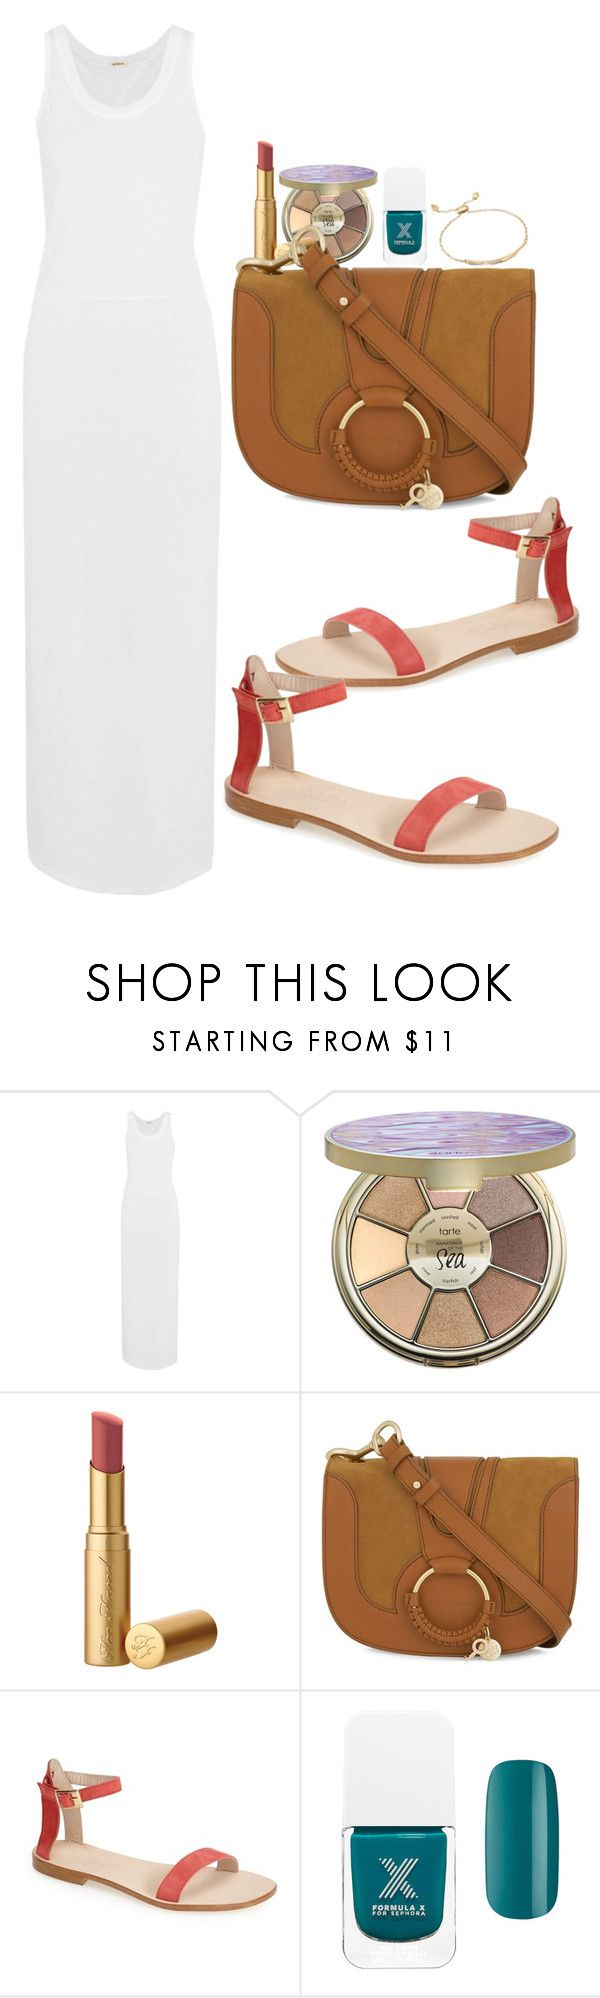 """""""Untitled #3674"""" by abigailtaylor ❤ liked on Polyvore featuring Monrow, tarte, See by Chloé, Cornetti, Formula X and Kendra Scott"""